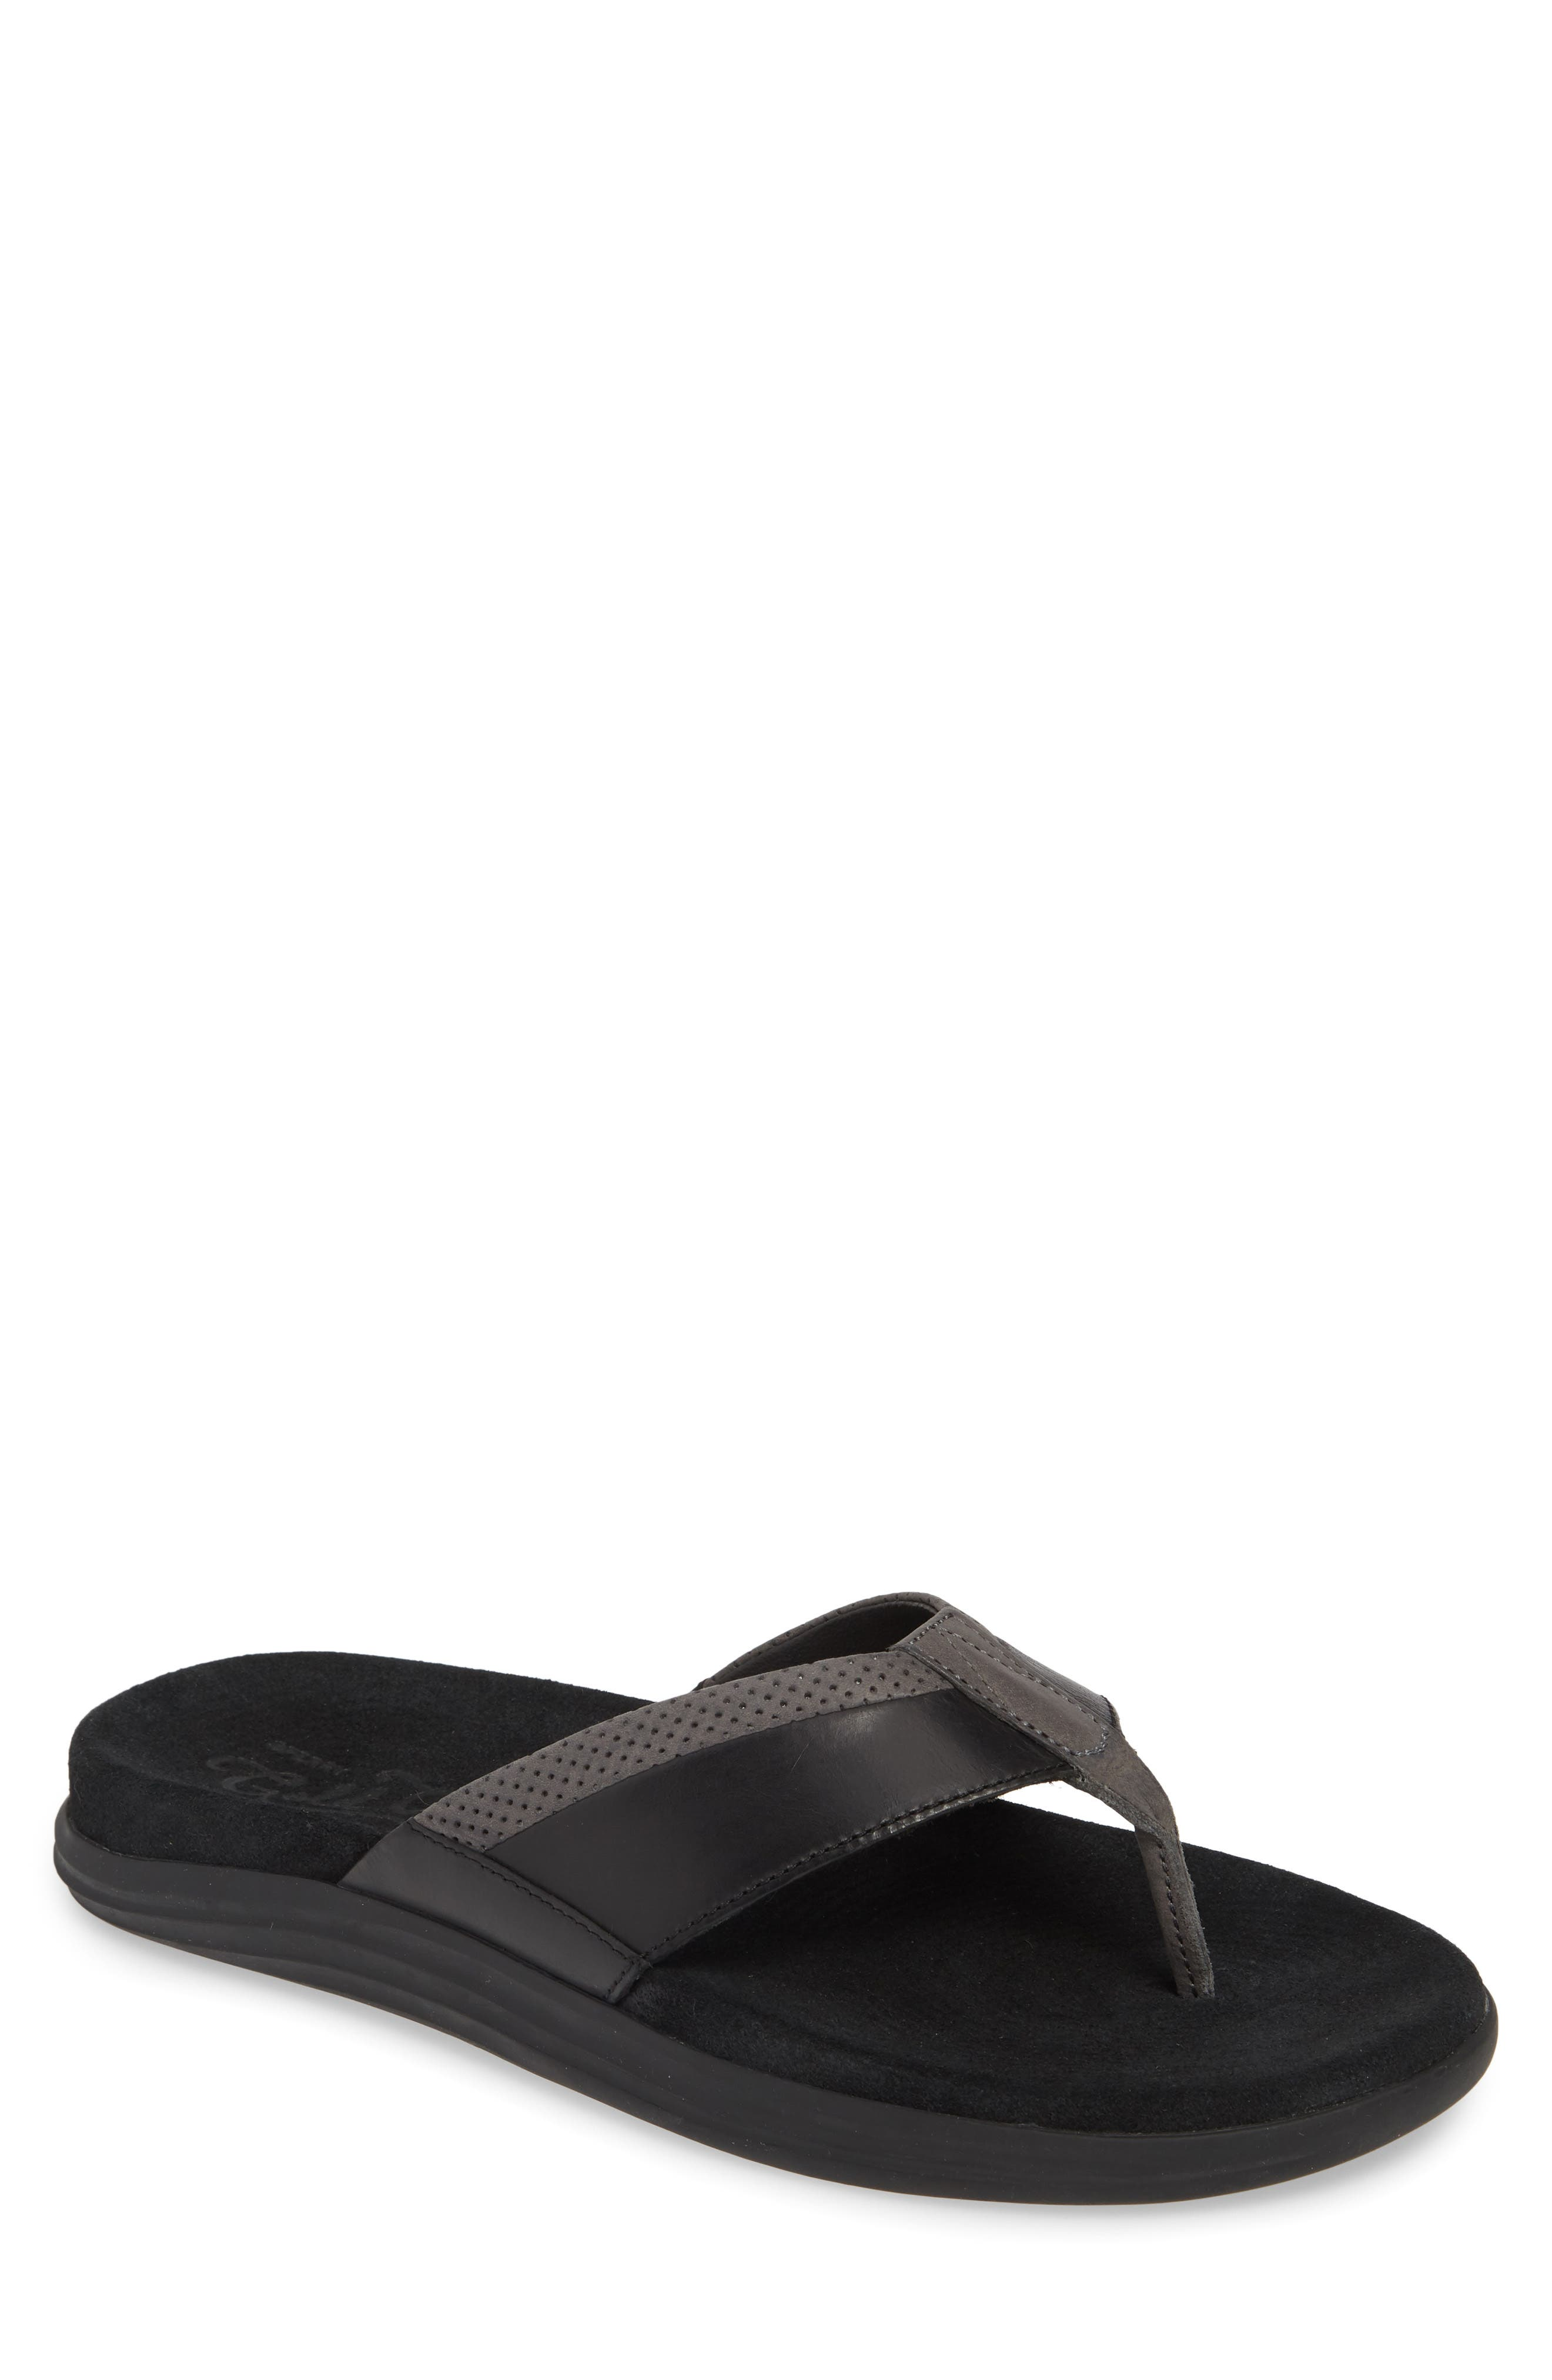 SPERRY Gold Cup Amalfi Flip Flop, Main, color, BLACK/ GREY LEATHER